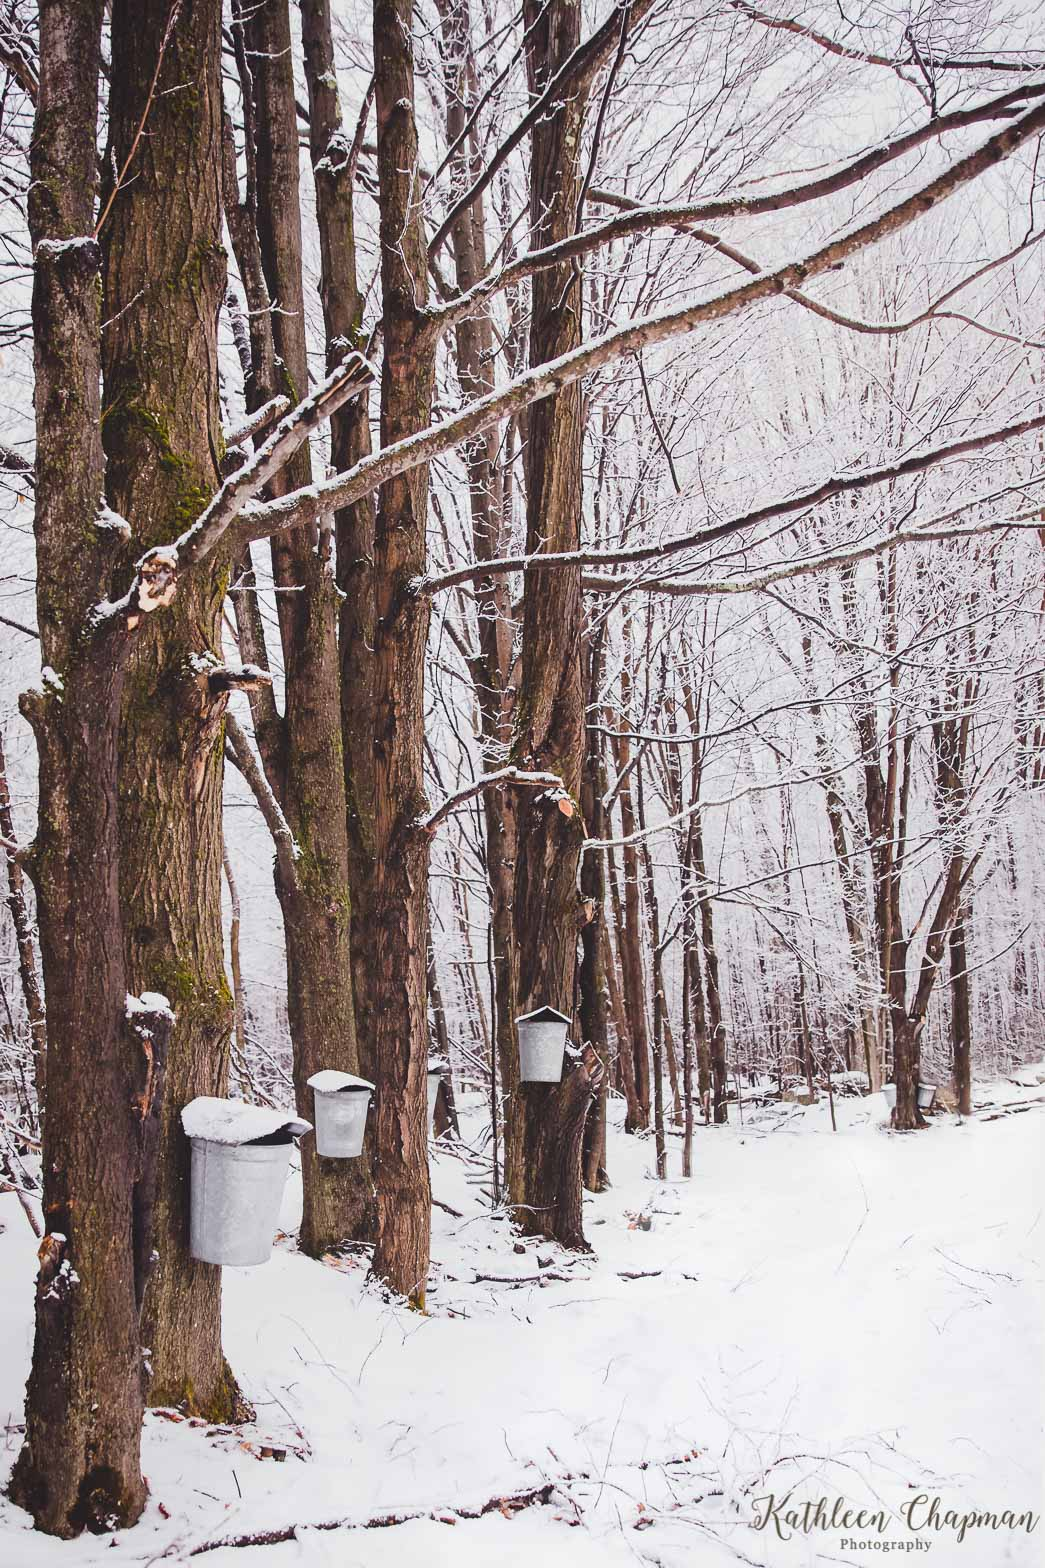 Amazing Fact It Takes About 40 Gallons Of Sap To Make 1 Gallon Maple Syrup